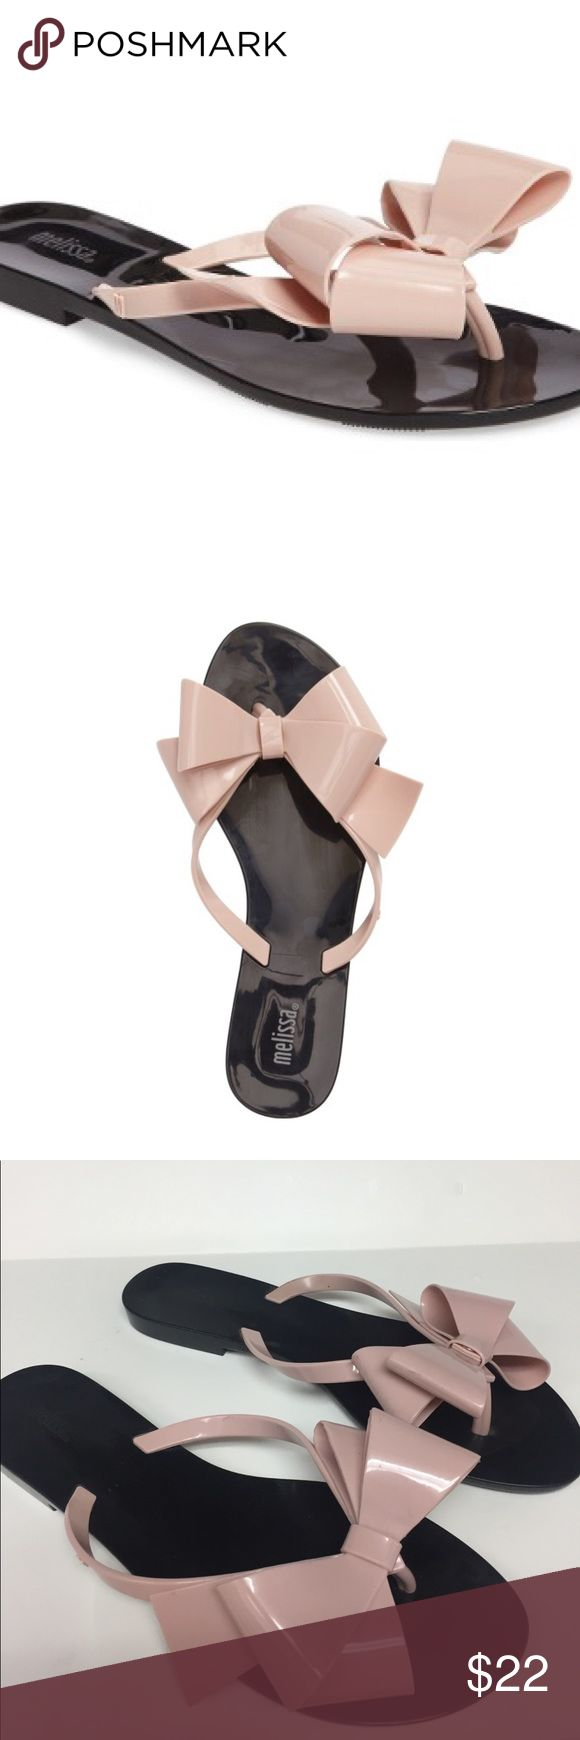 Melissa Harmonic Bow III Pink Flip Flip Sandal An oversized pink bow sets on top of  a simple flip-flop  sandal. Molded from fruit scented PVC. Black bottom with pink bow. Made in Brazil. Durable flexible and recyclable. Worn only a couple times. Melissa Shoes Sandals